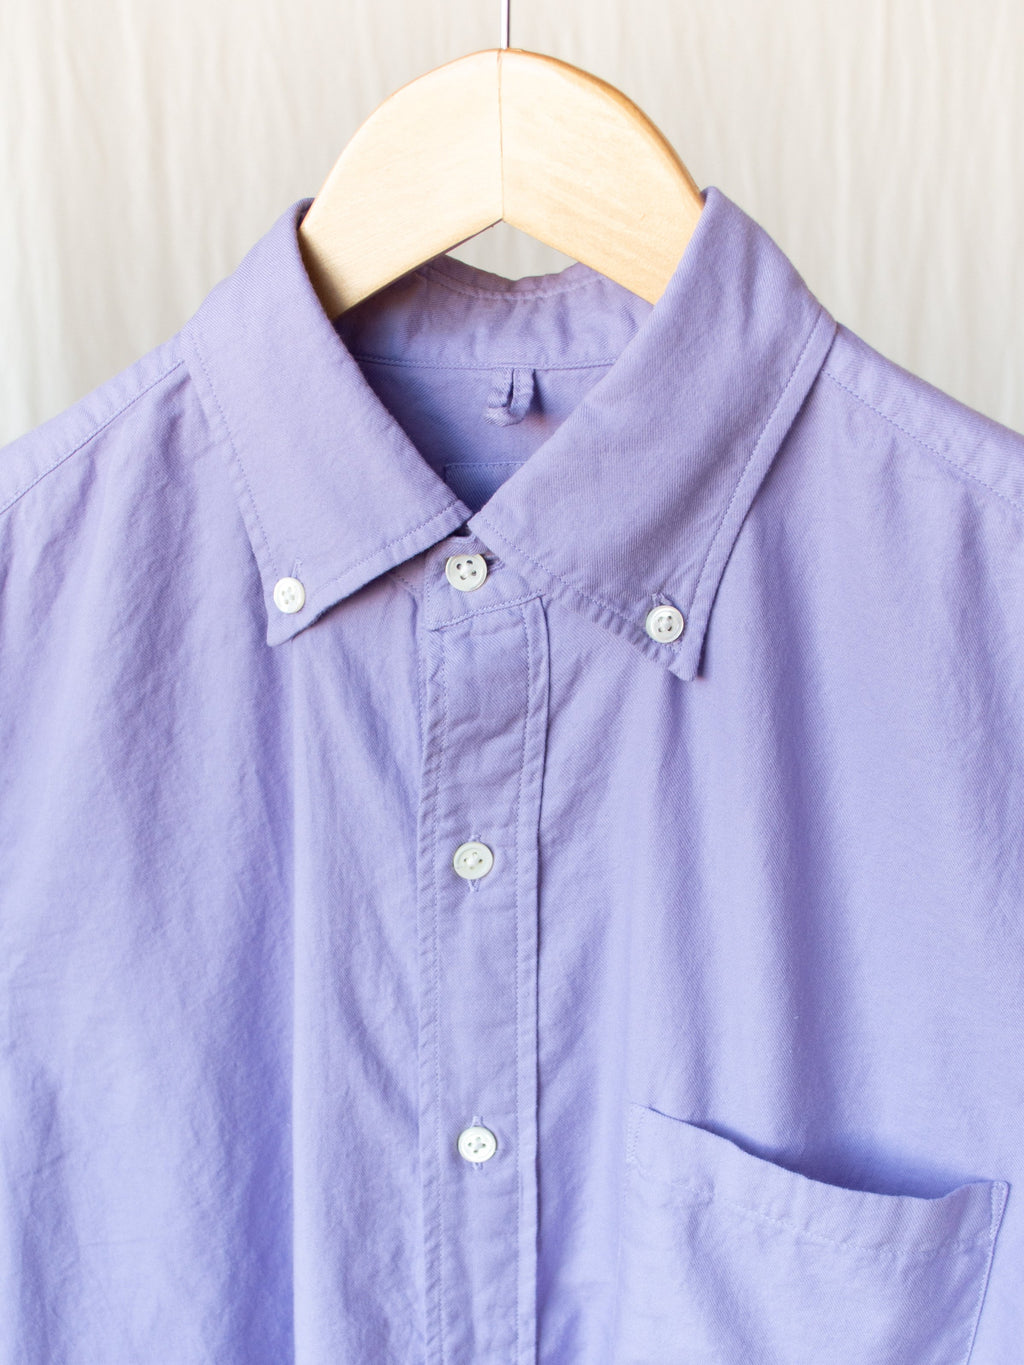 Namu Shop - ts(s) Garment Dyed Cotton Viyella BD Shirt - Lavender